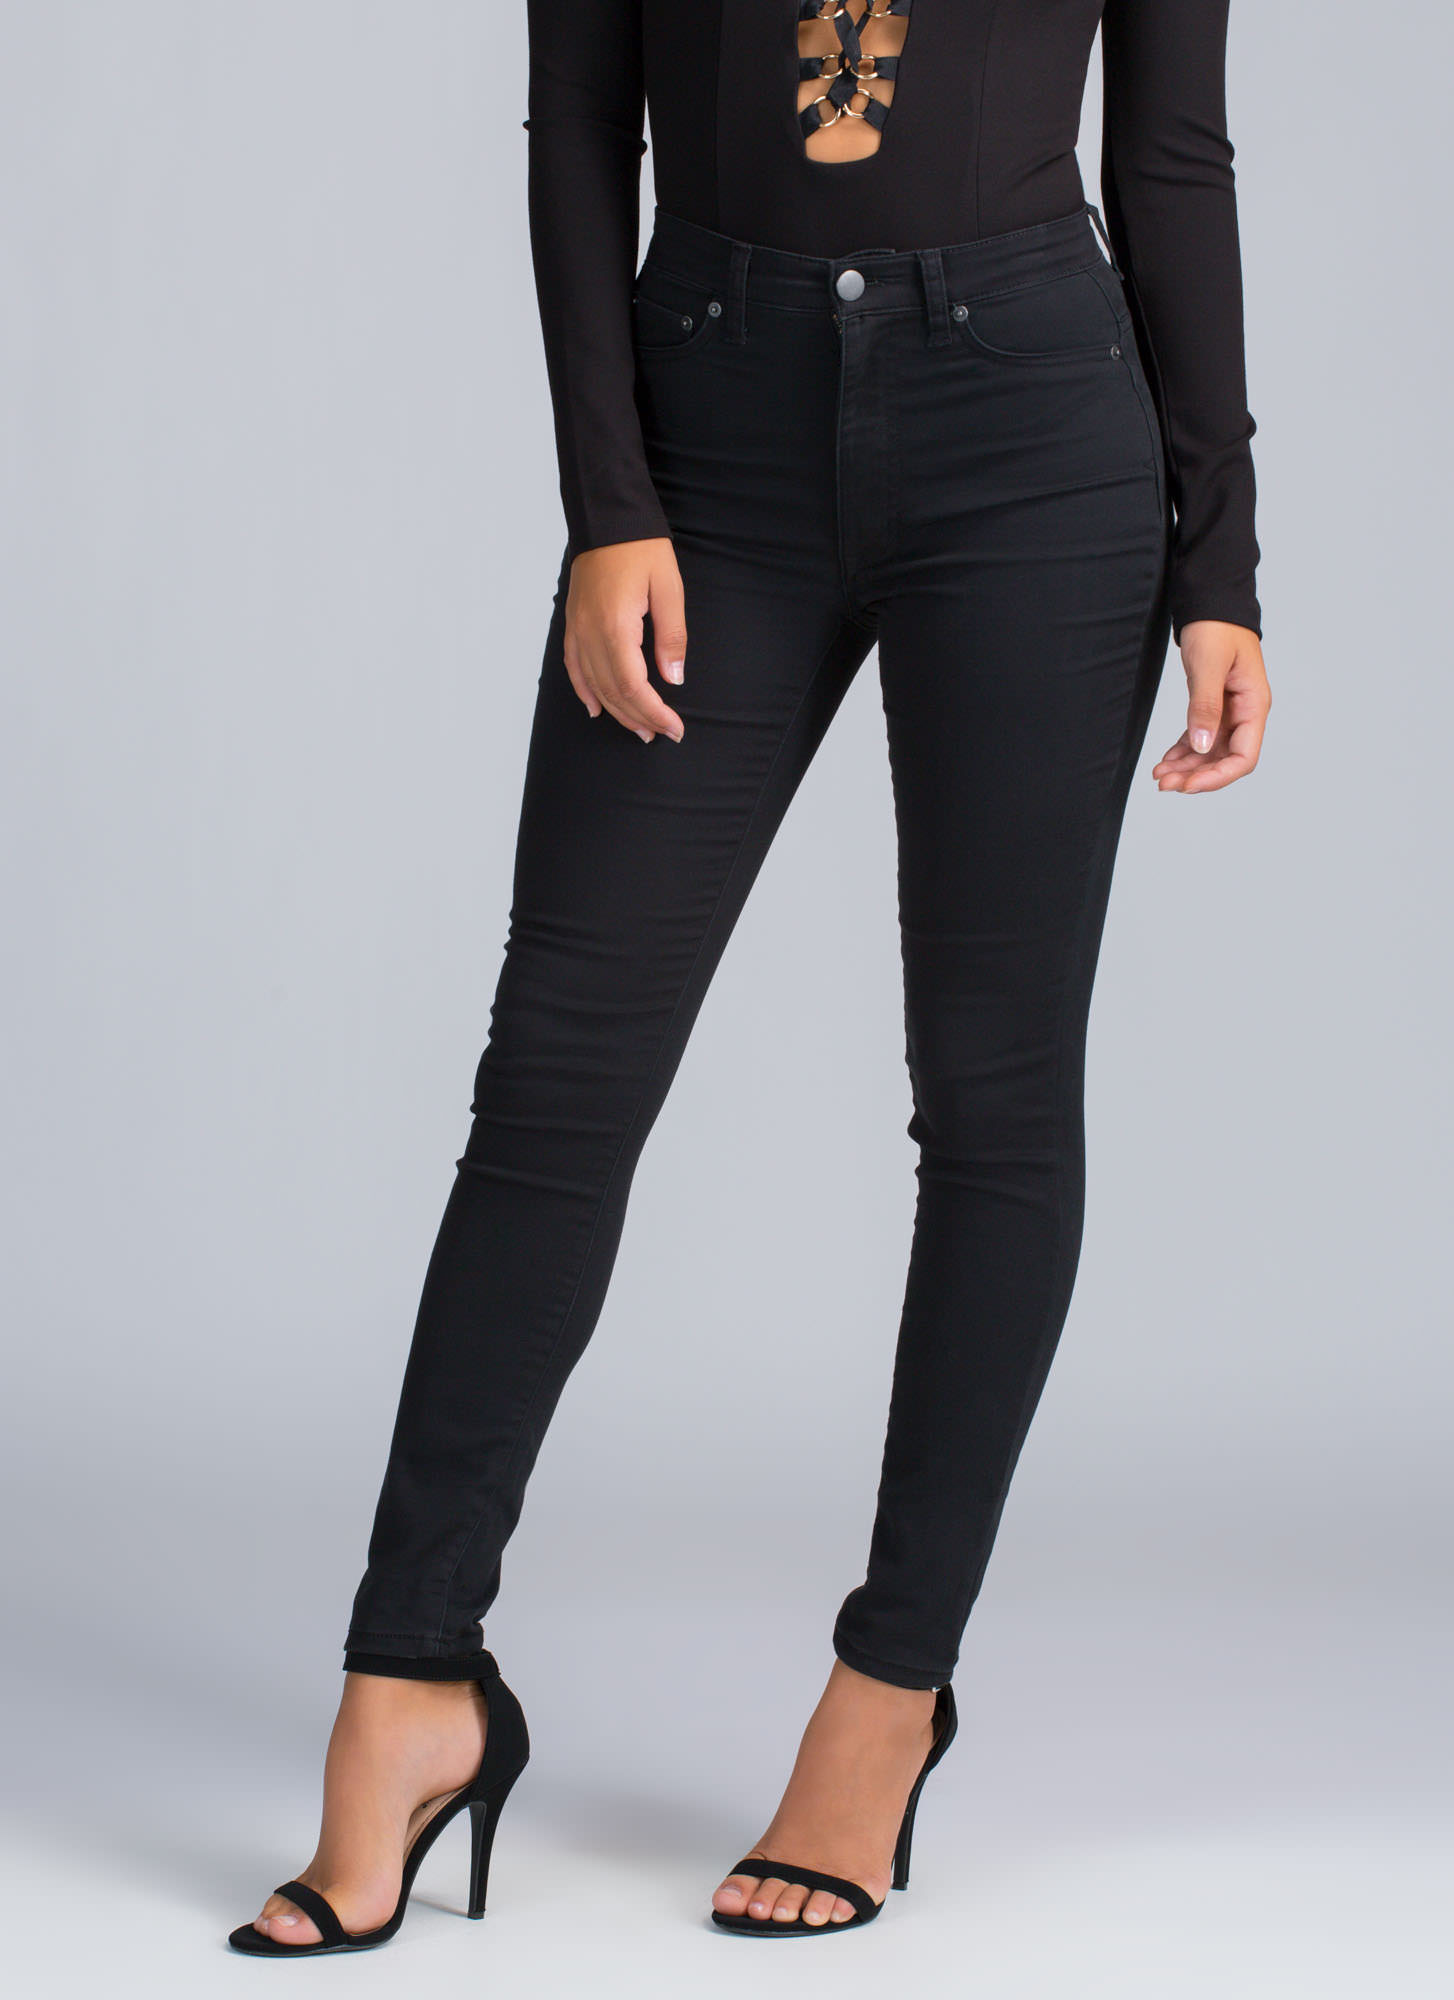 Stretchy Black Jeans - Jeans Am